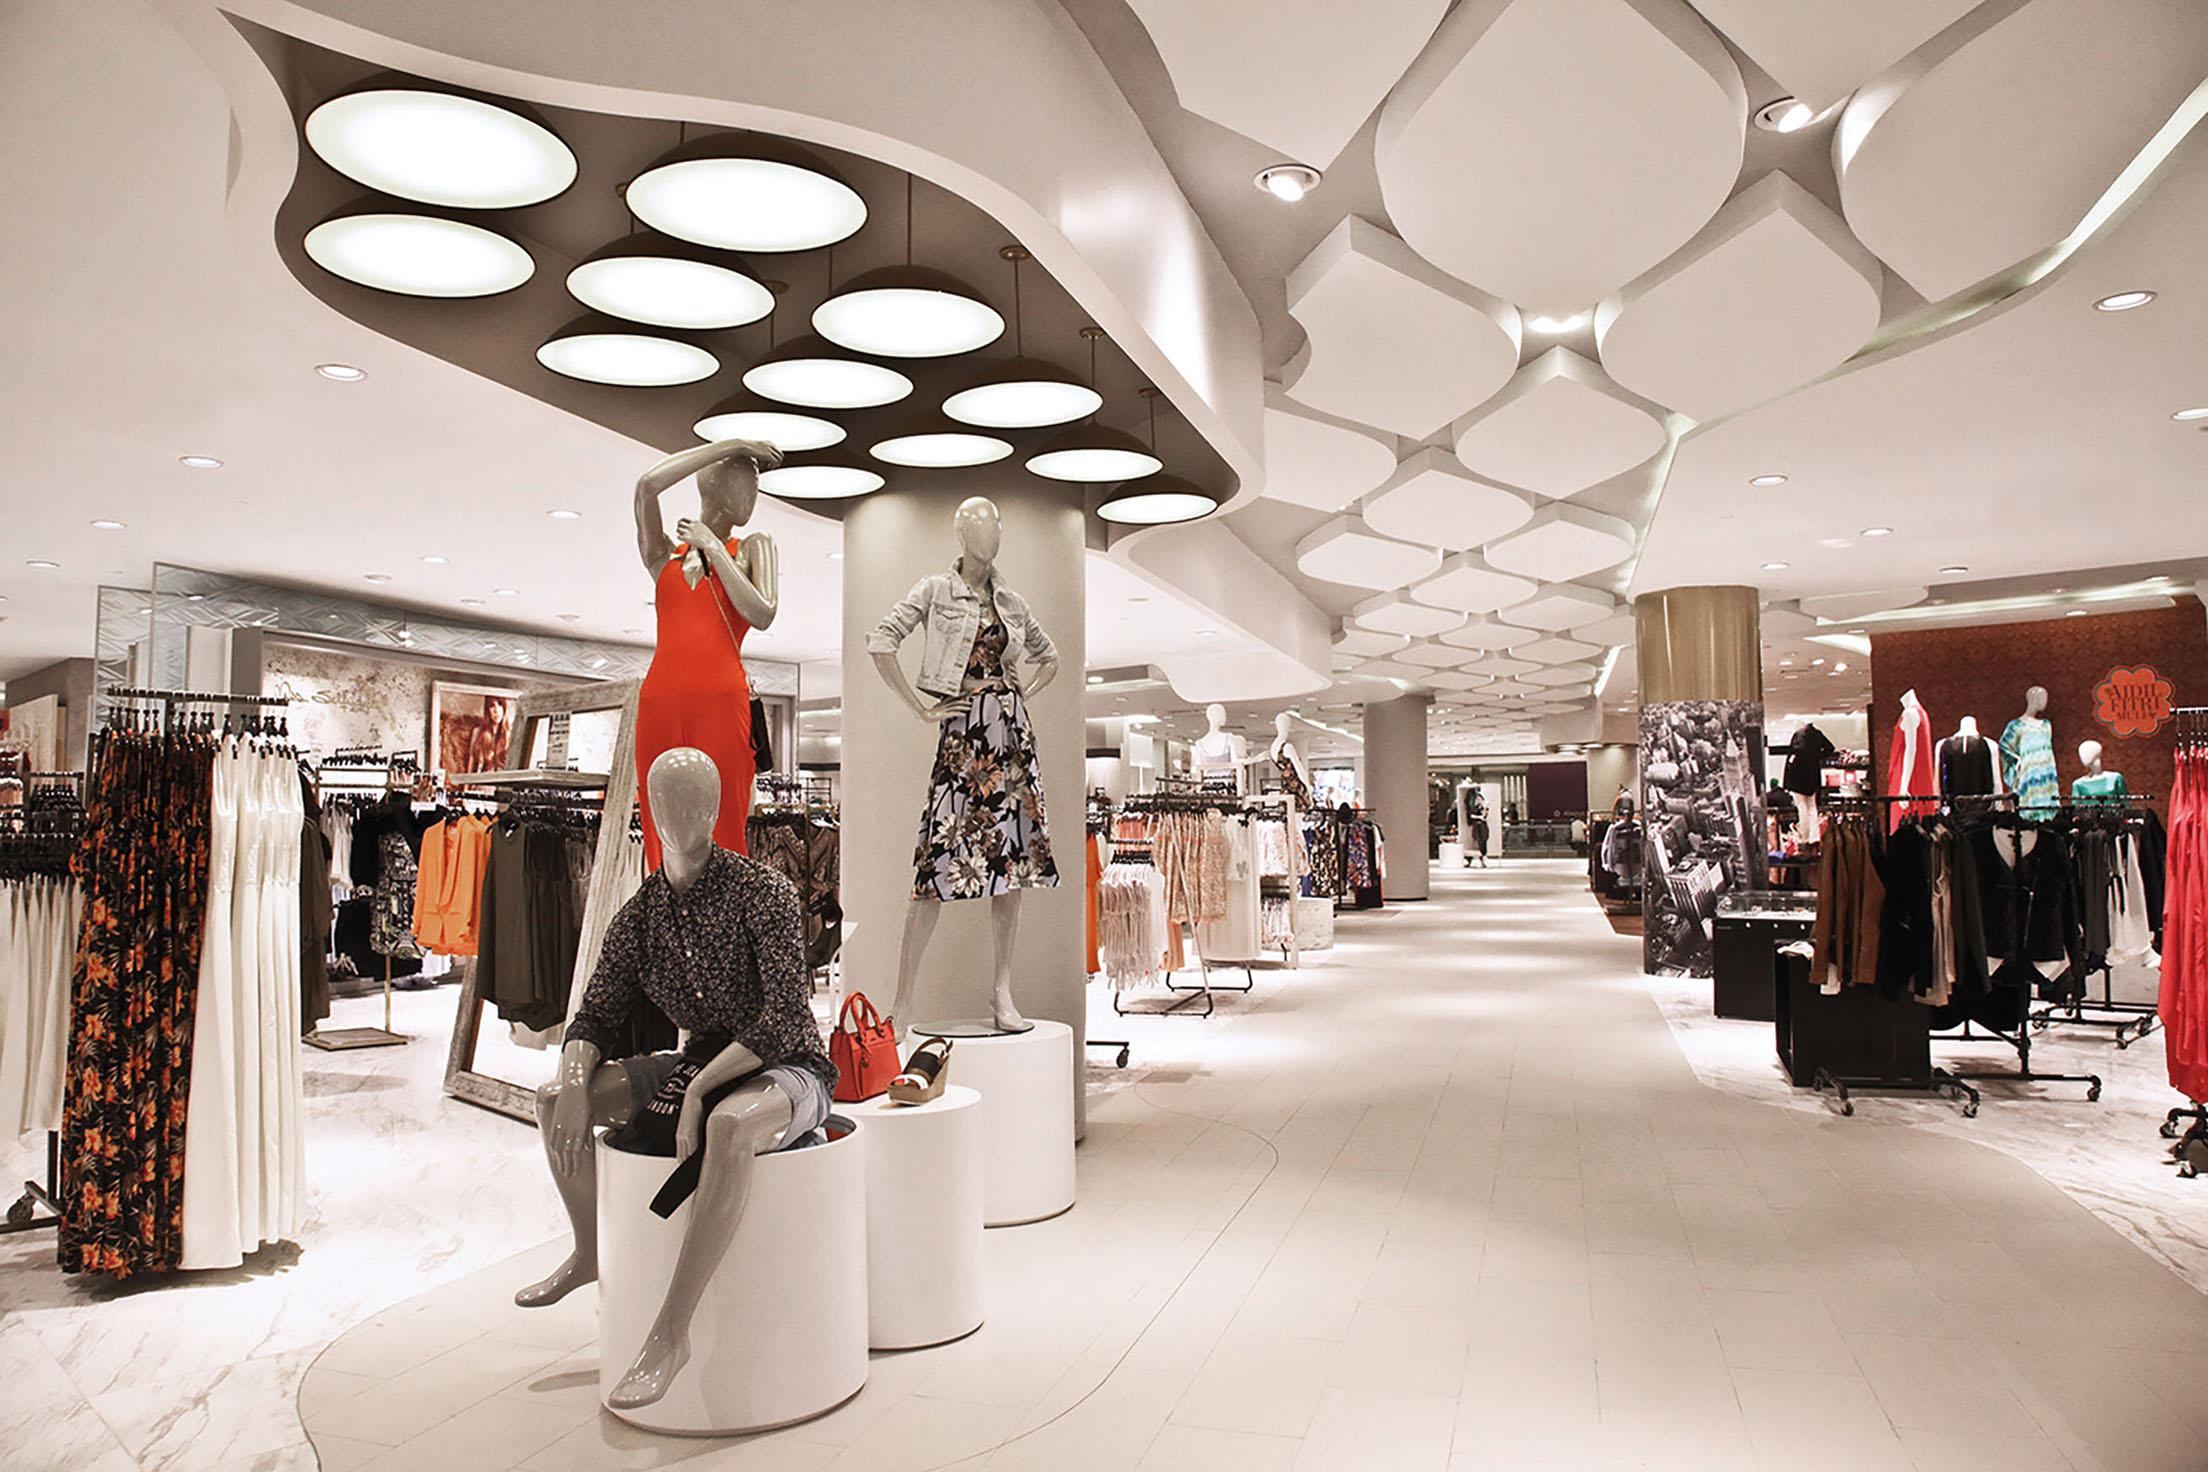 parkson retails China retail weekly updates 5 august – 11 august 2016 retail in general p2 ndrc: total retails sales of consumer goods up by 103% yoy in 1h16 nielsen: chinese consumers' confidence level rises in 2q16  parkson issues profit warning as 1h16 net losses to increase more than 100.